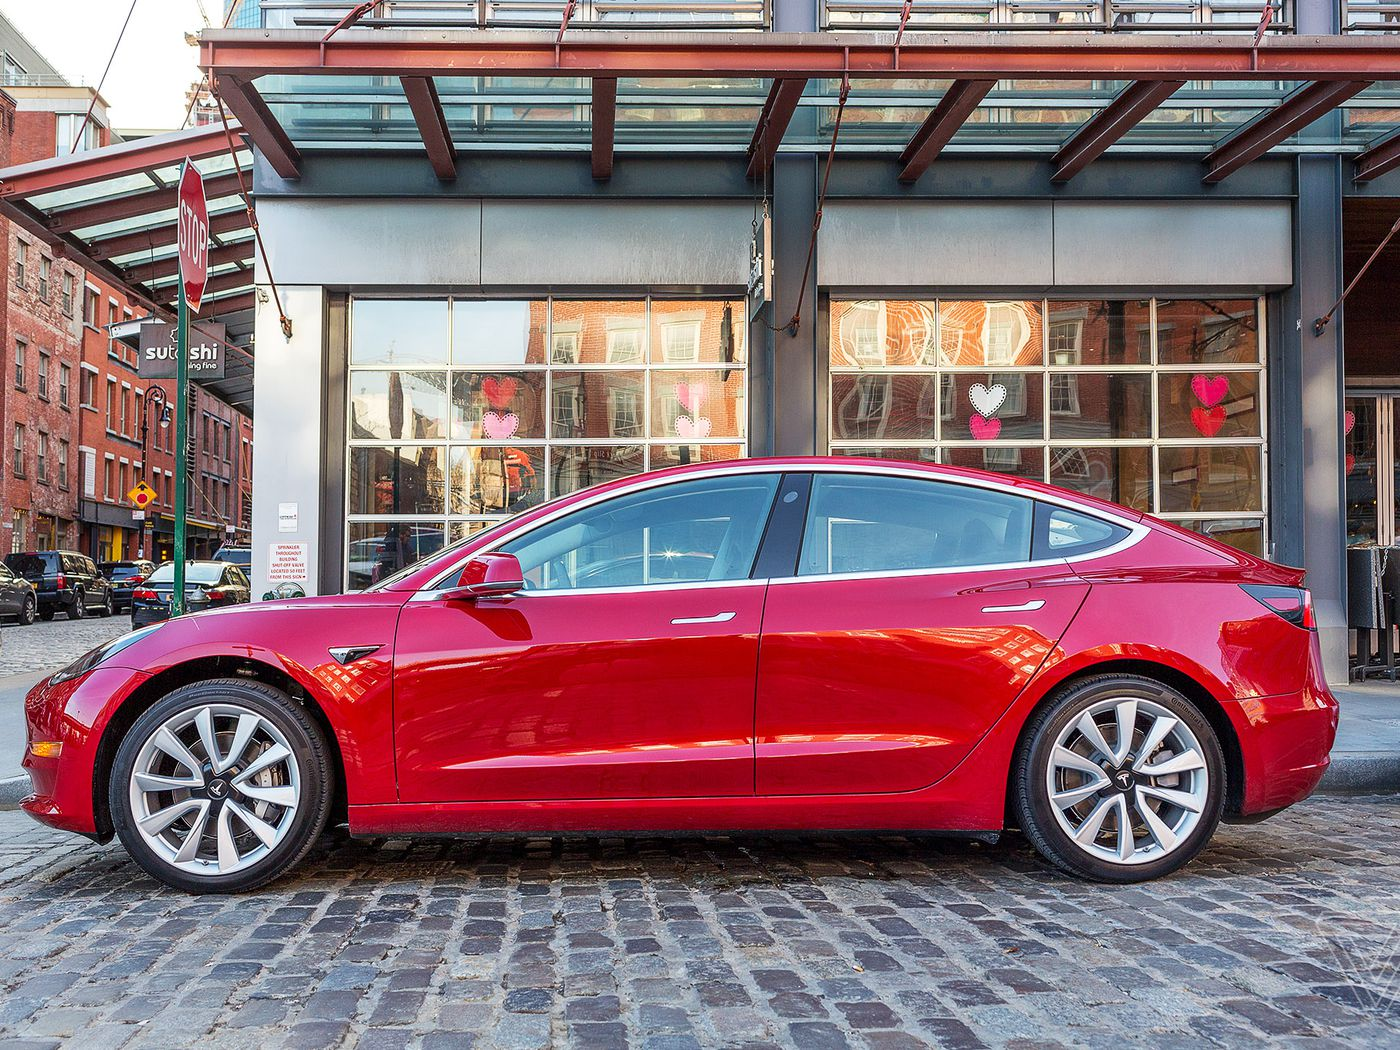 Tesla's promised $35,000 Model 3 is finally here - The Verge